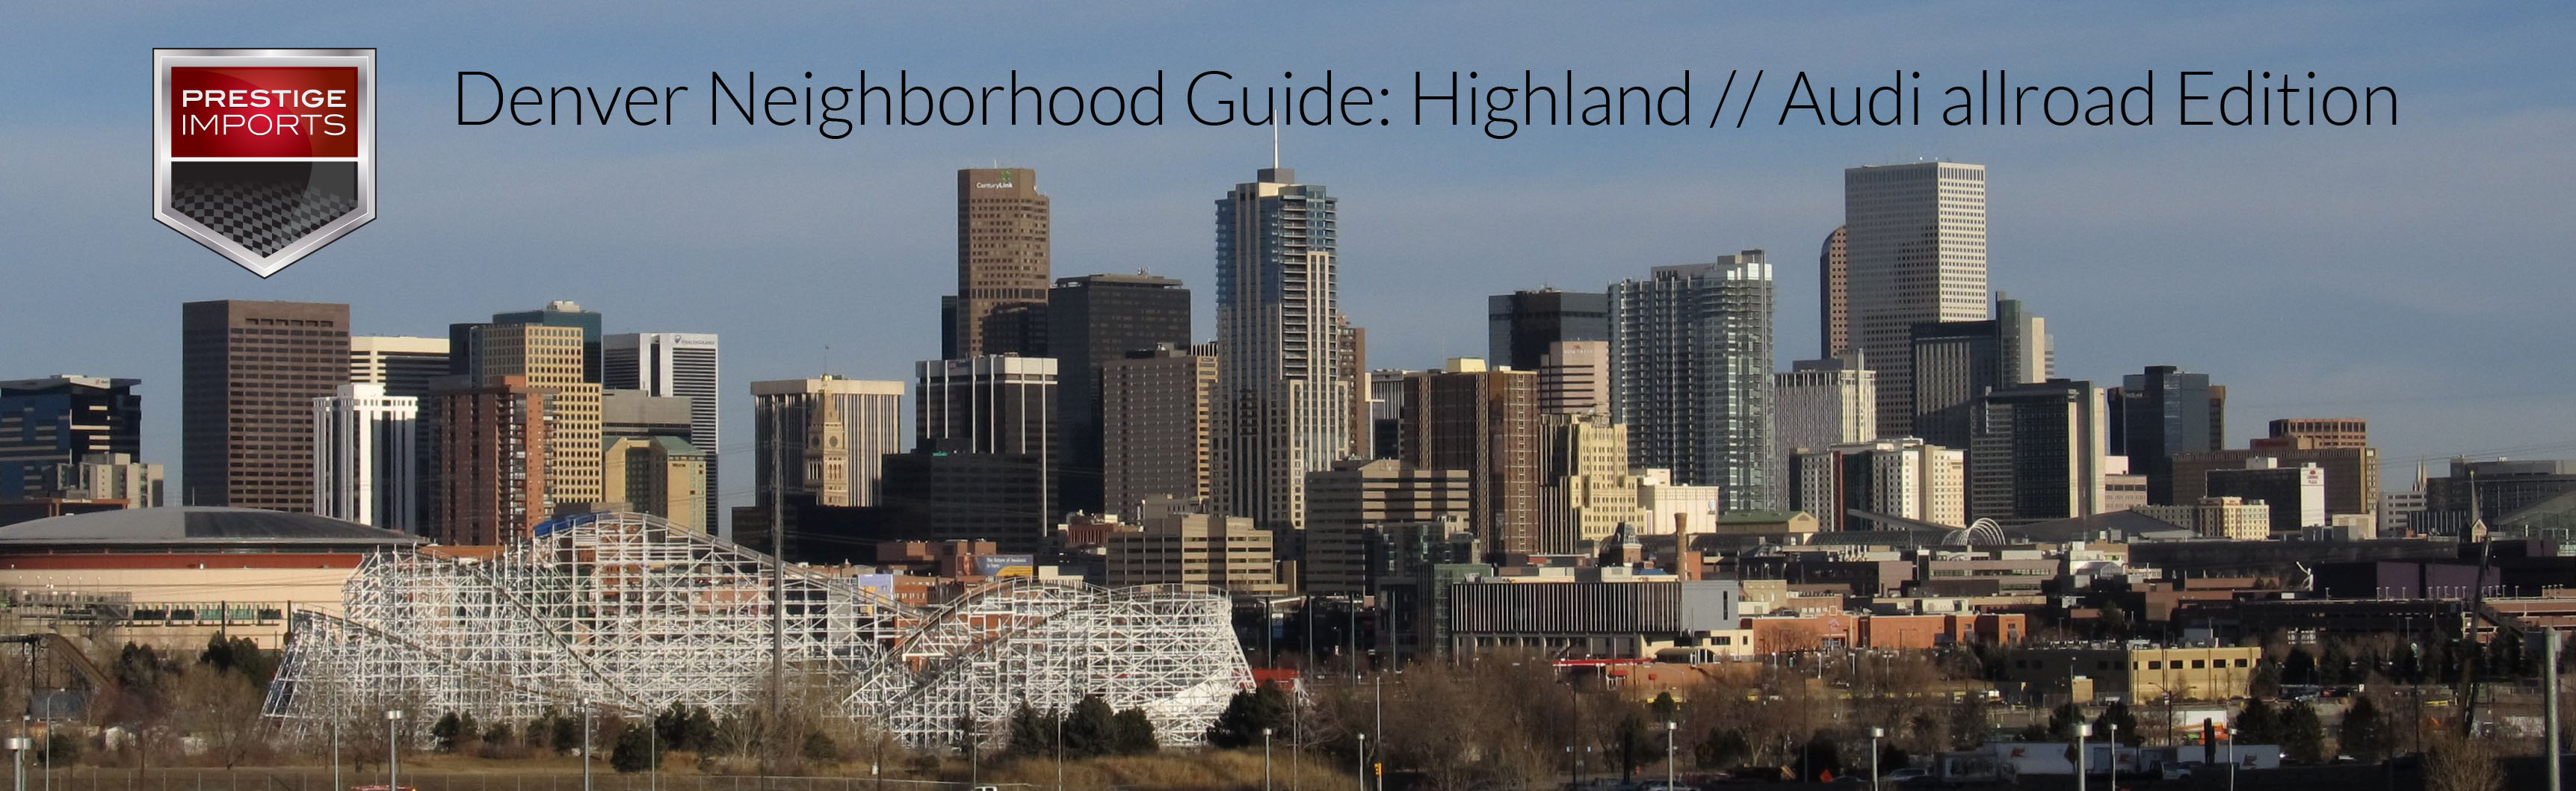 Denver Neighborhood Guide - Linking the Audi allroad and the highland neighborhood, Denver, CO